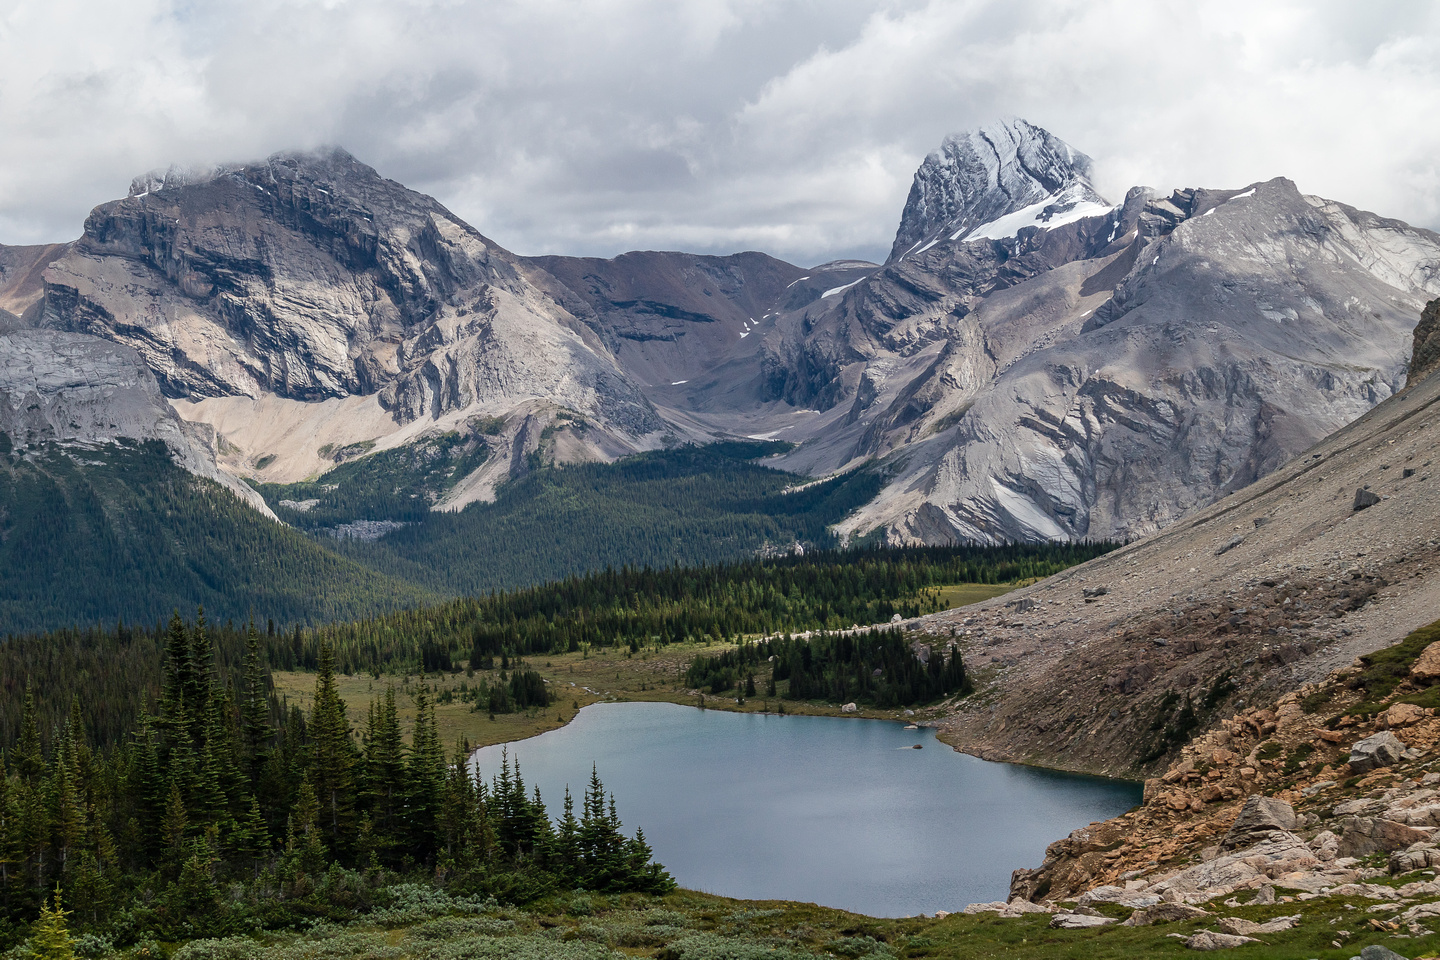 Cataract Peak looms large across Fish Lakes.